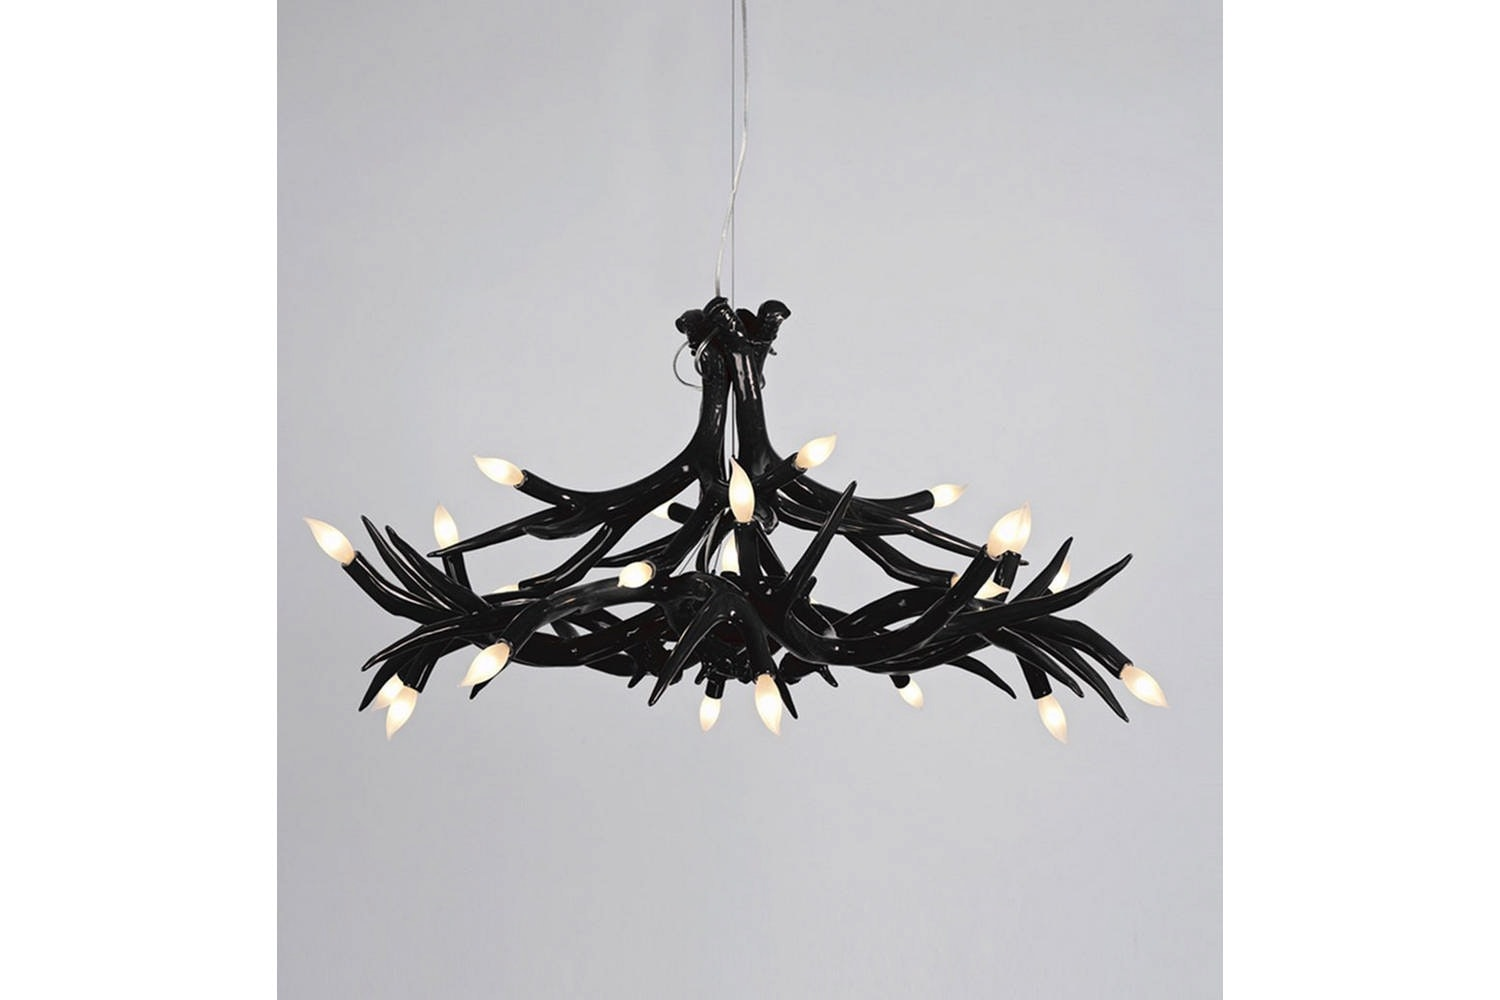 Superordinate Antler Chandelier - 12 Antlers by Jason Miller for Roll & Hill